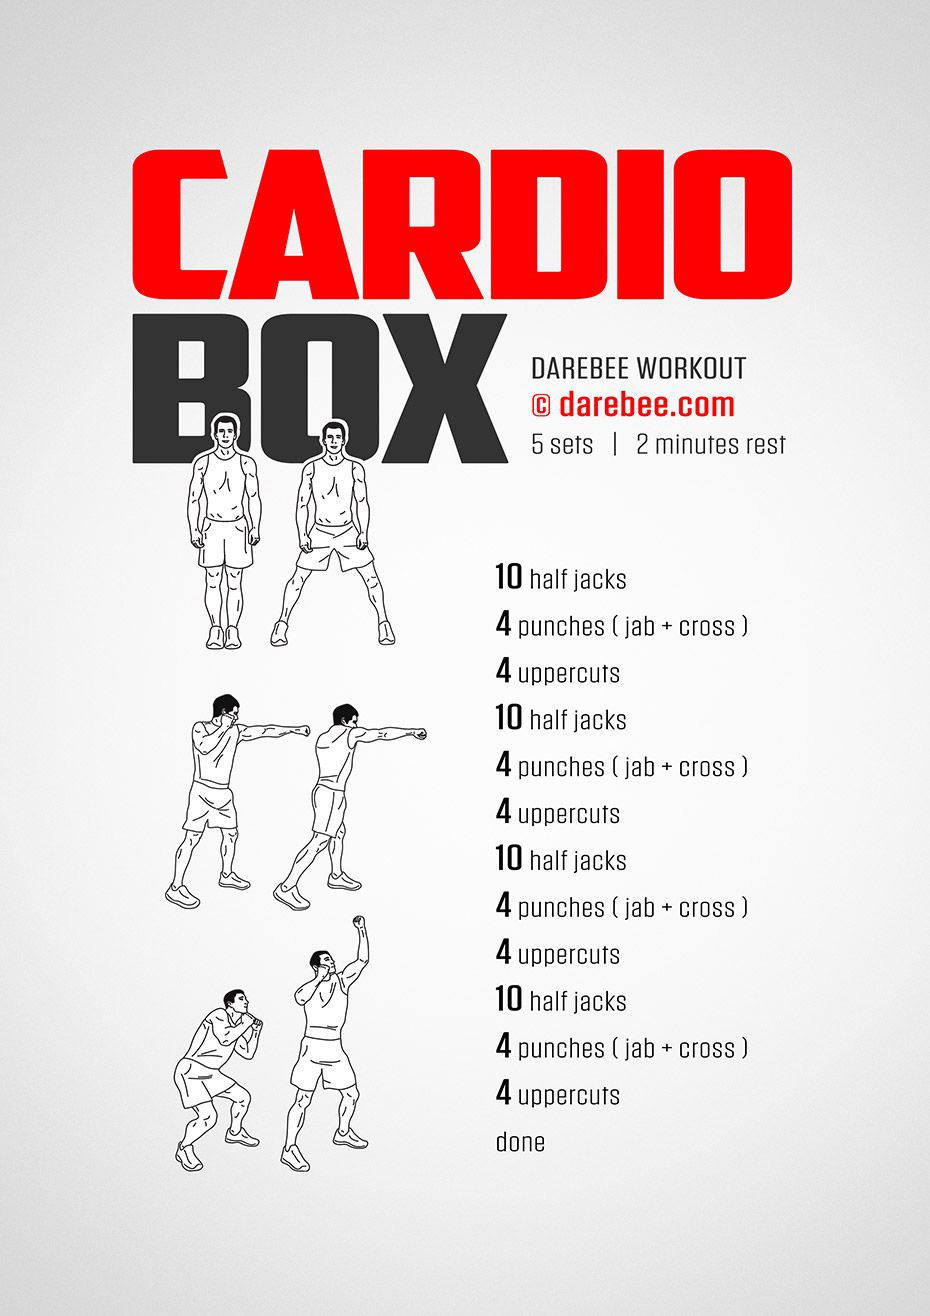 Fitness | Boxing | Pinterest | Cardio, Workout and Box